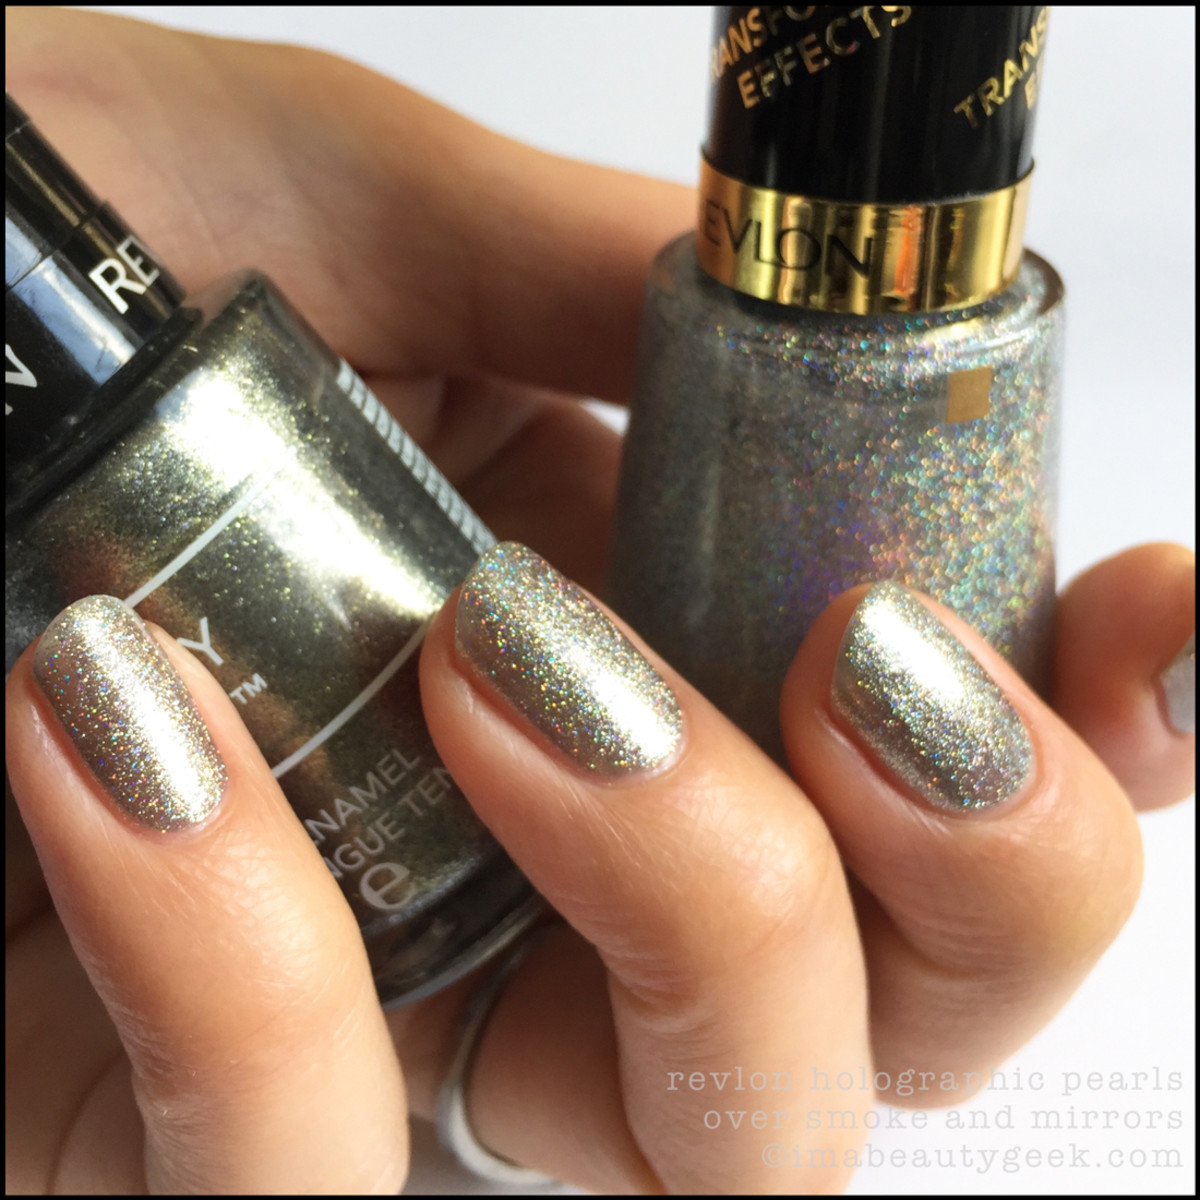 Revlon Holographic Pearls Top Coat over Smoke and Mirrors